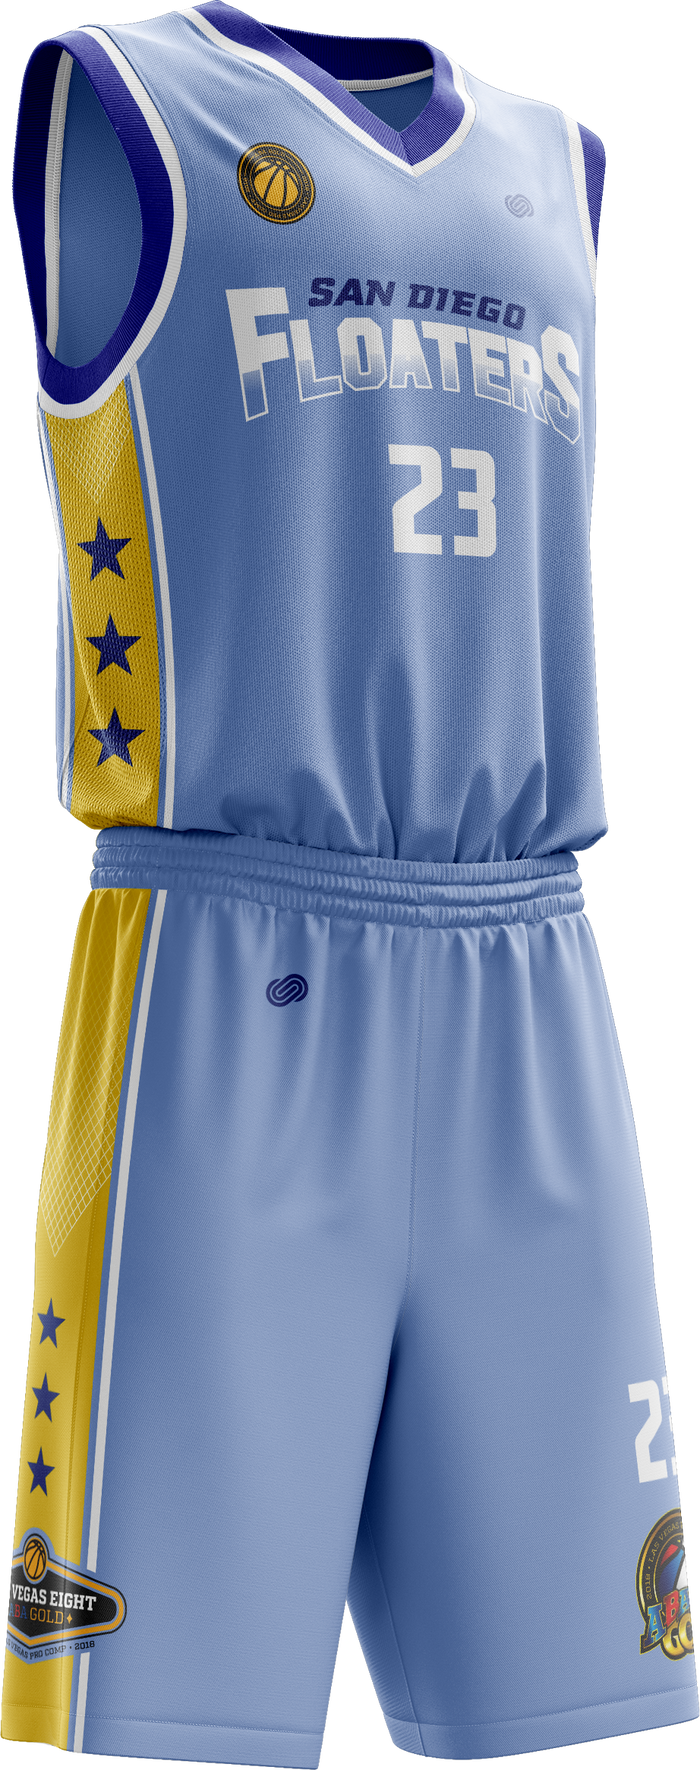 San Diego Floaters Road Uniform